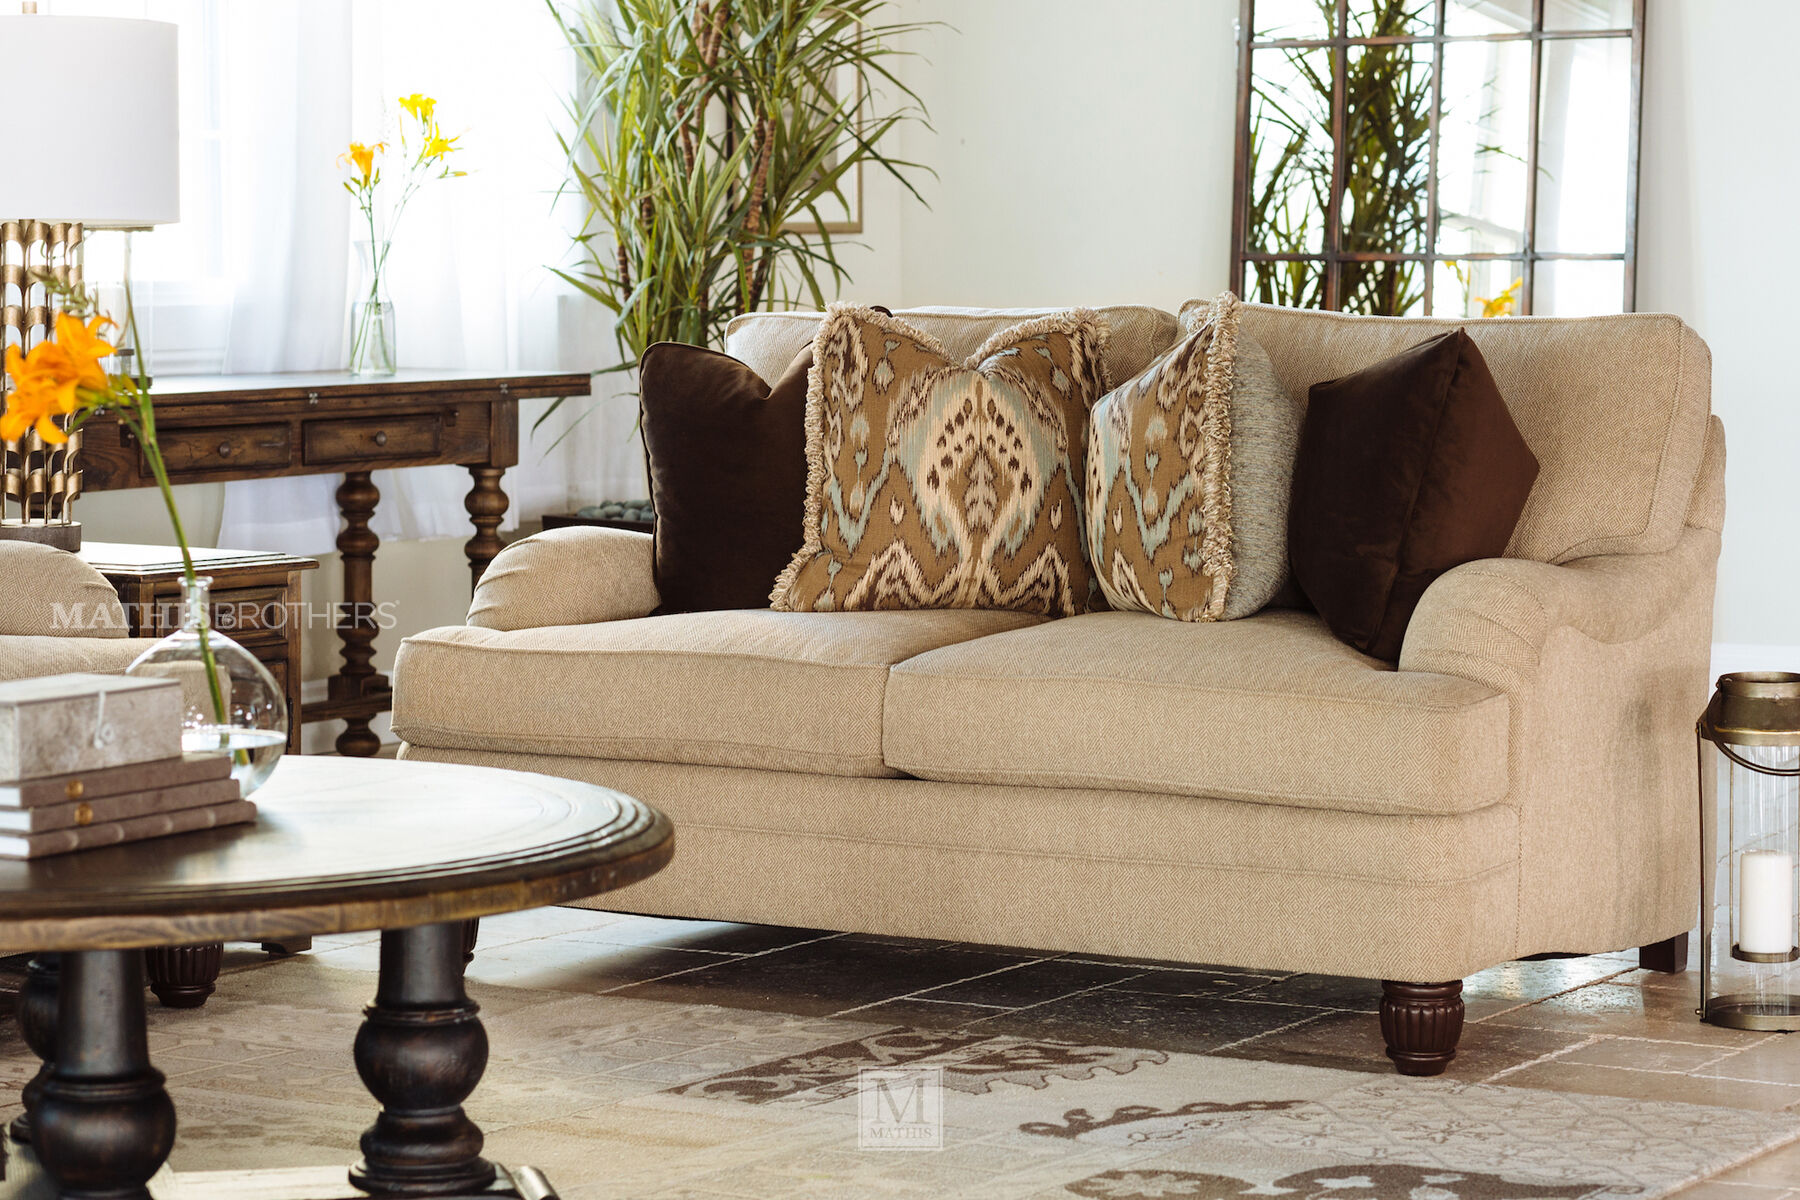 bernhardt walsh sofa black microfiber sectional diamond textured casual 69 5 quot loveseat in beige mathis